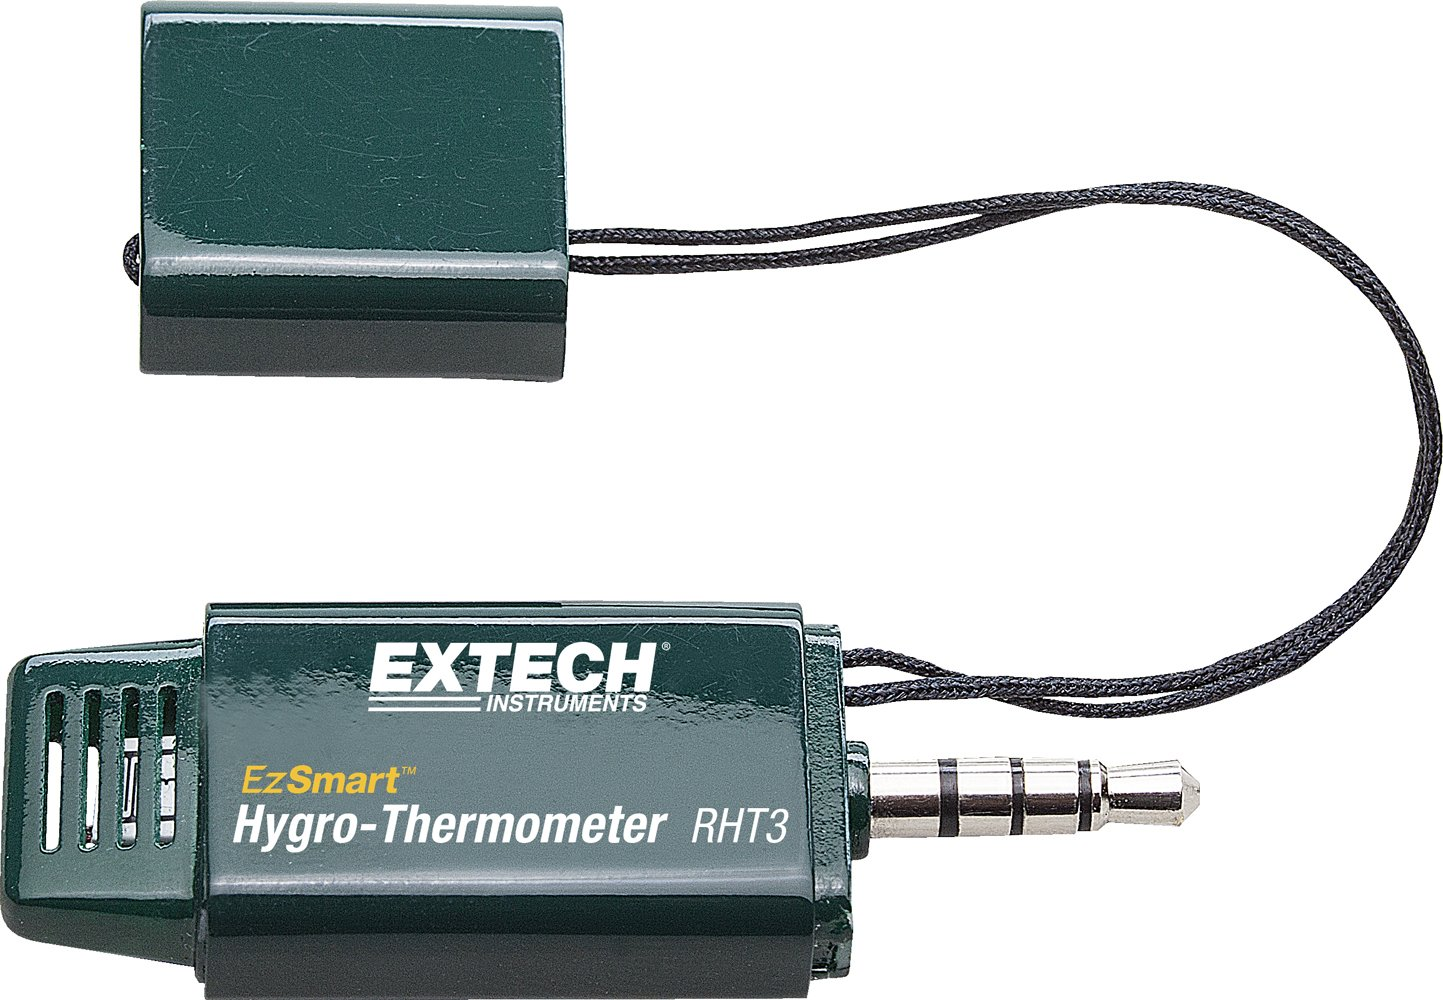 Extech RHT3 EzSmart Hygro-Thermometer by Extech